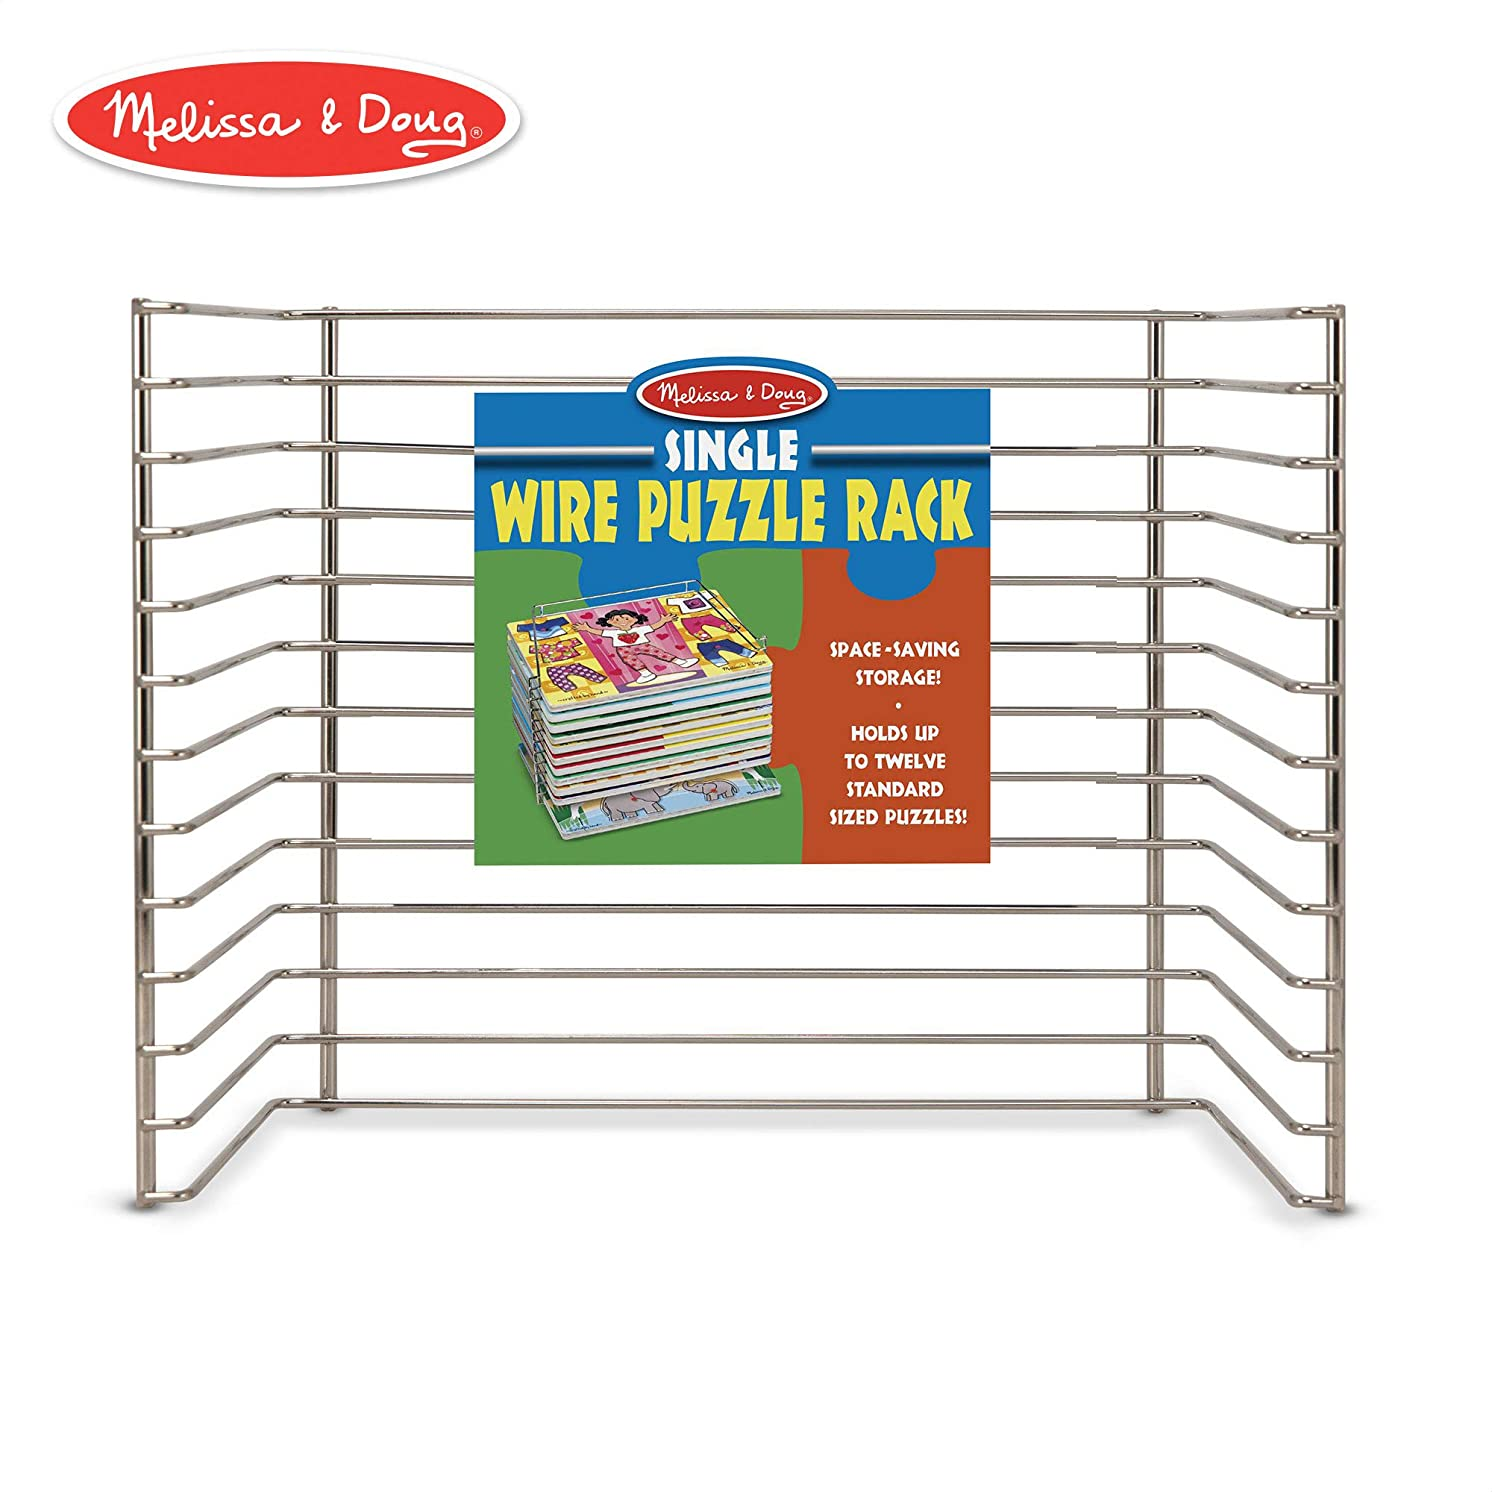 "Melissa & Doug Wire Puzzle Storage Rack (Arts & Crafts, Sturdy Metal Construction, Pre-Assembled, Peg Puzzle Storage, 8.5"" H x 8.5"" W x 12"" L)"